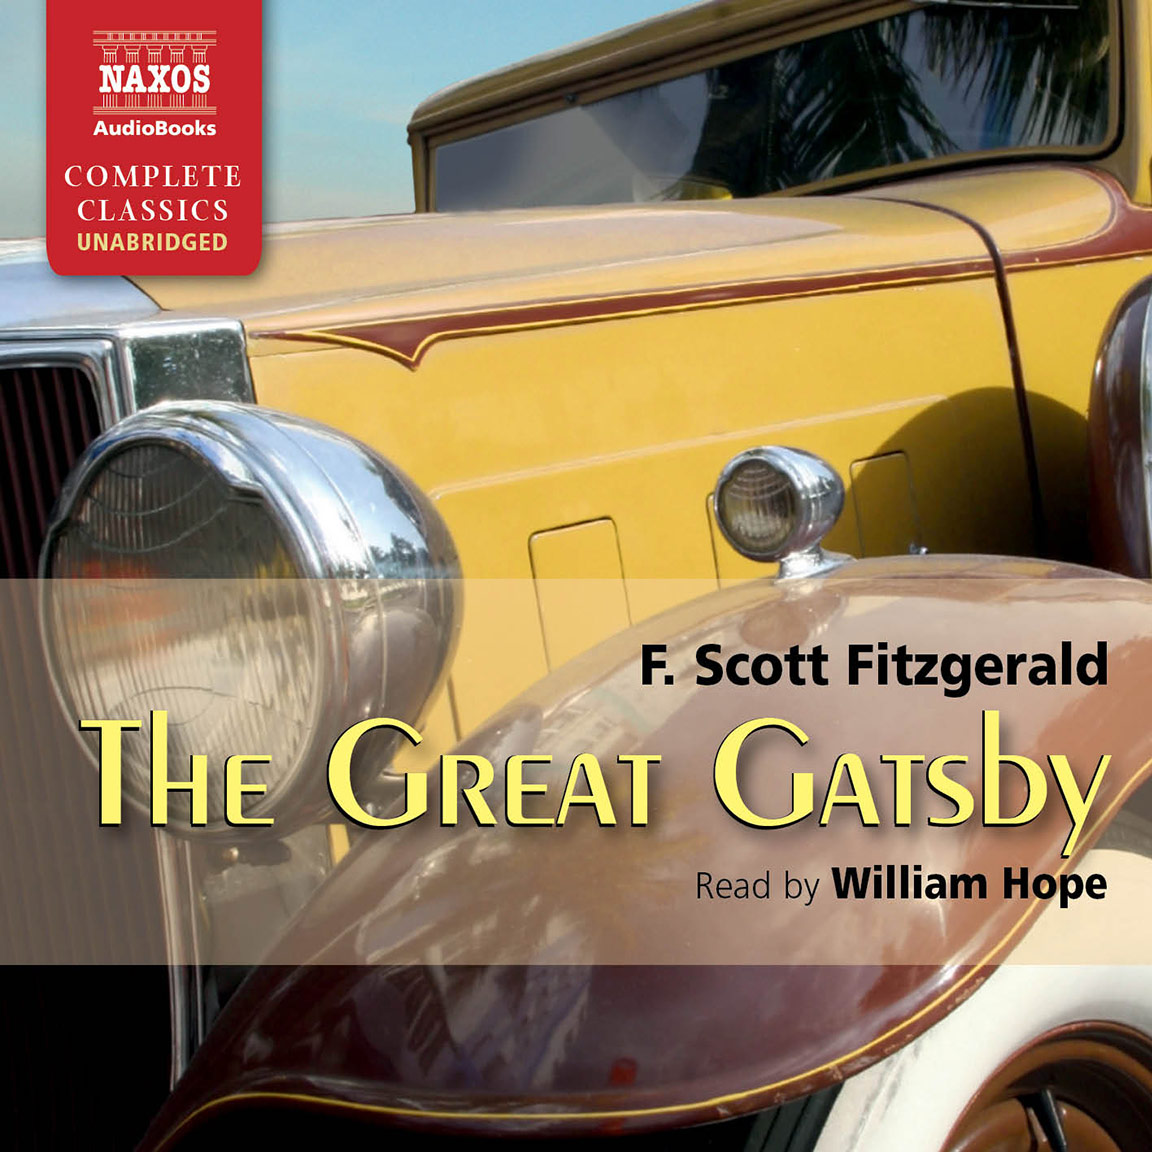 the pathetic character of jay in the great gatsby a novel by f scott fitzgerald